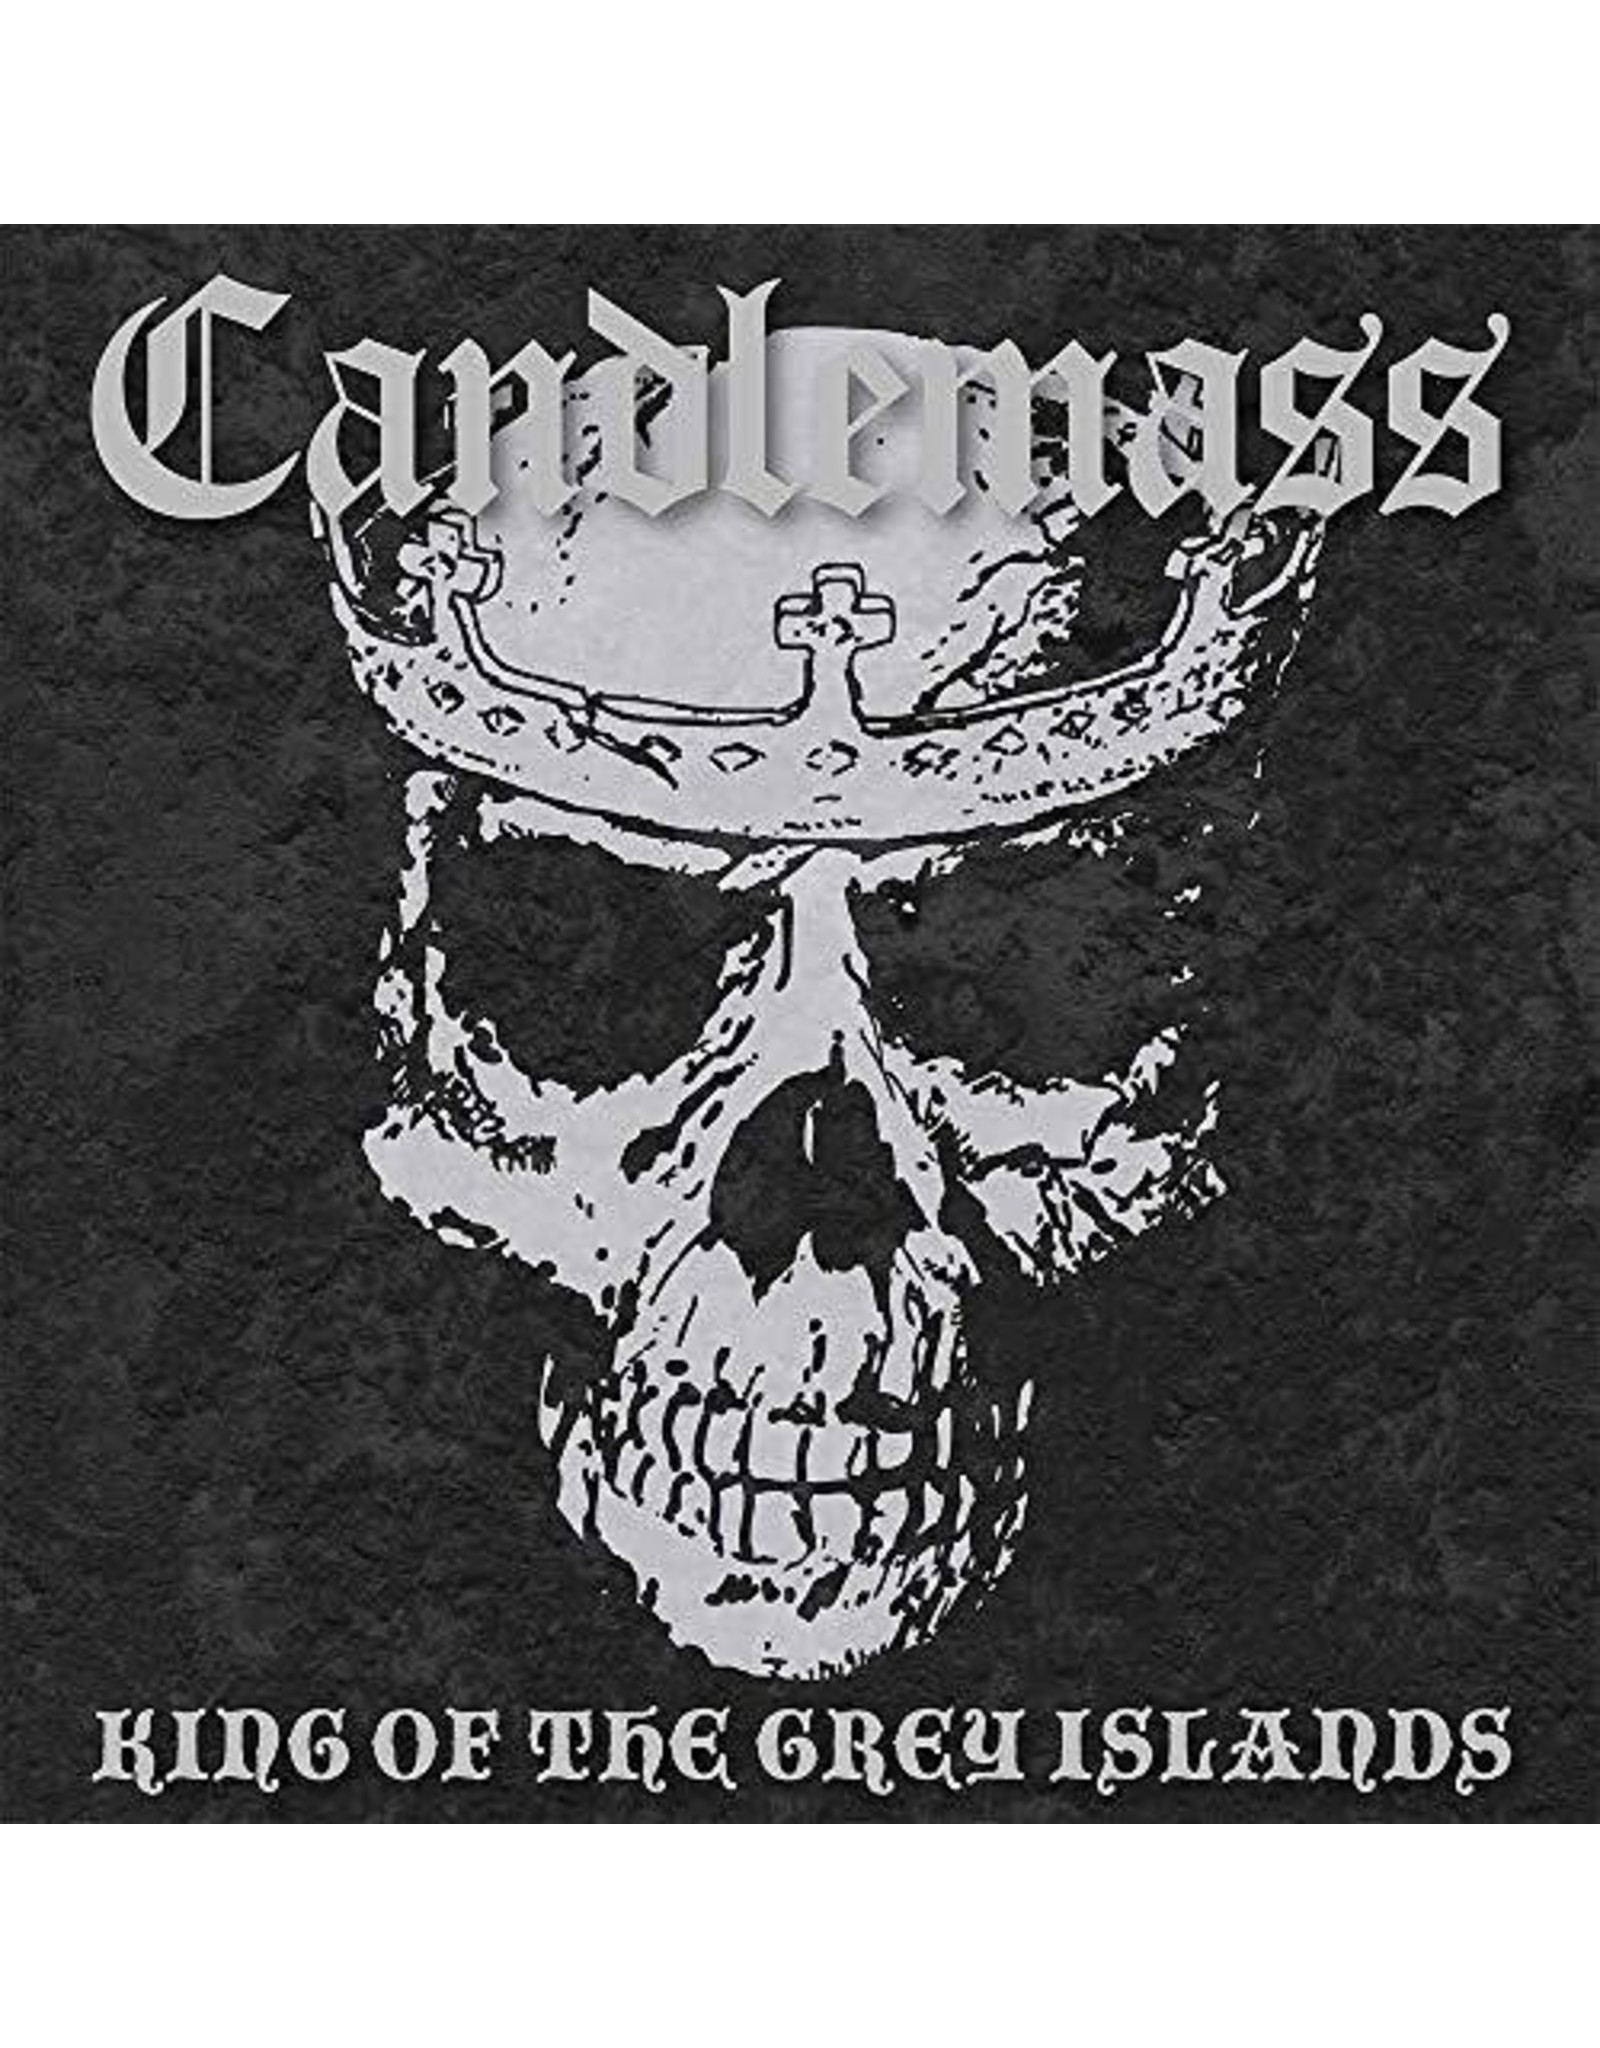 New Vinyl Candlemass - King Of The Grey Islands 2LP